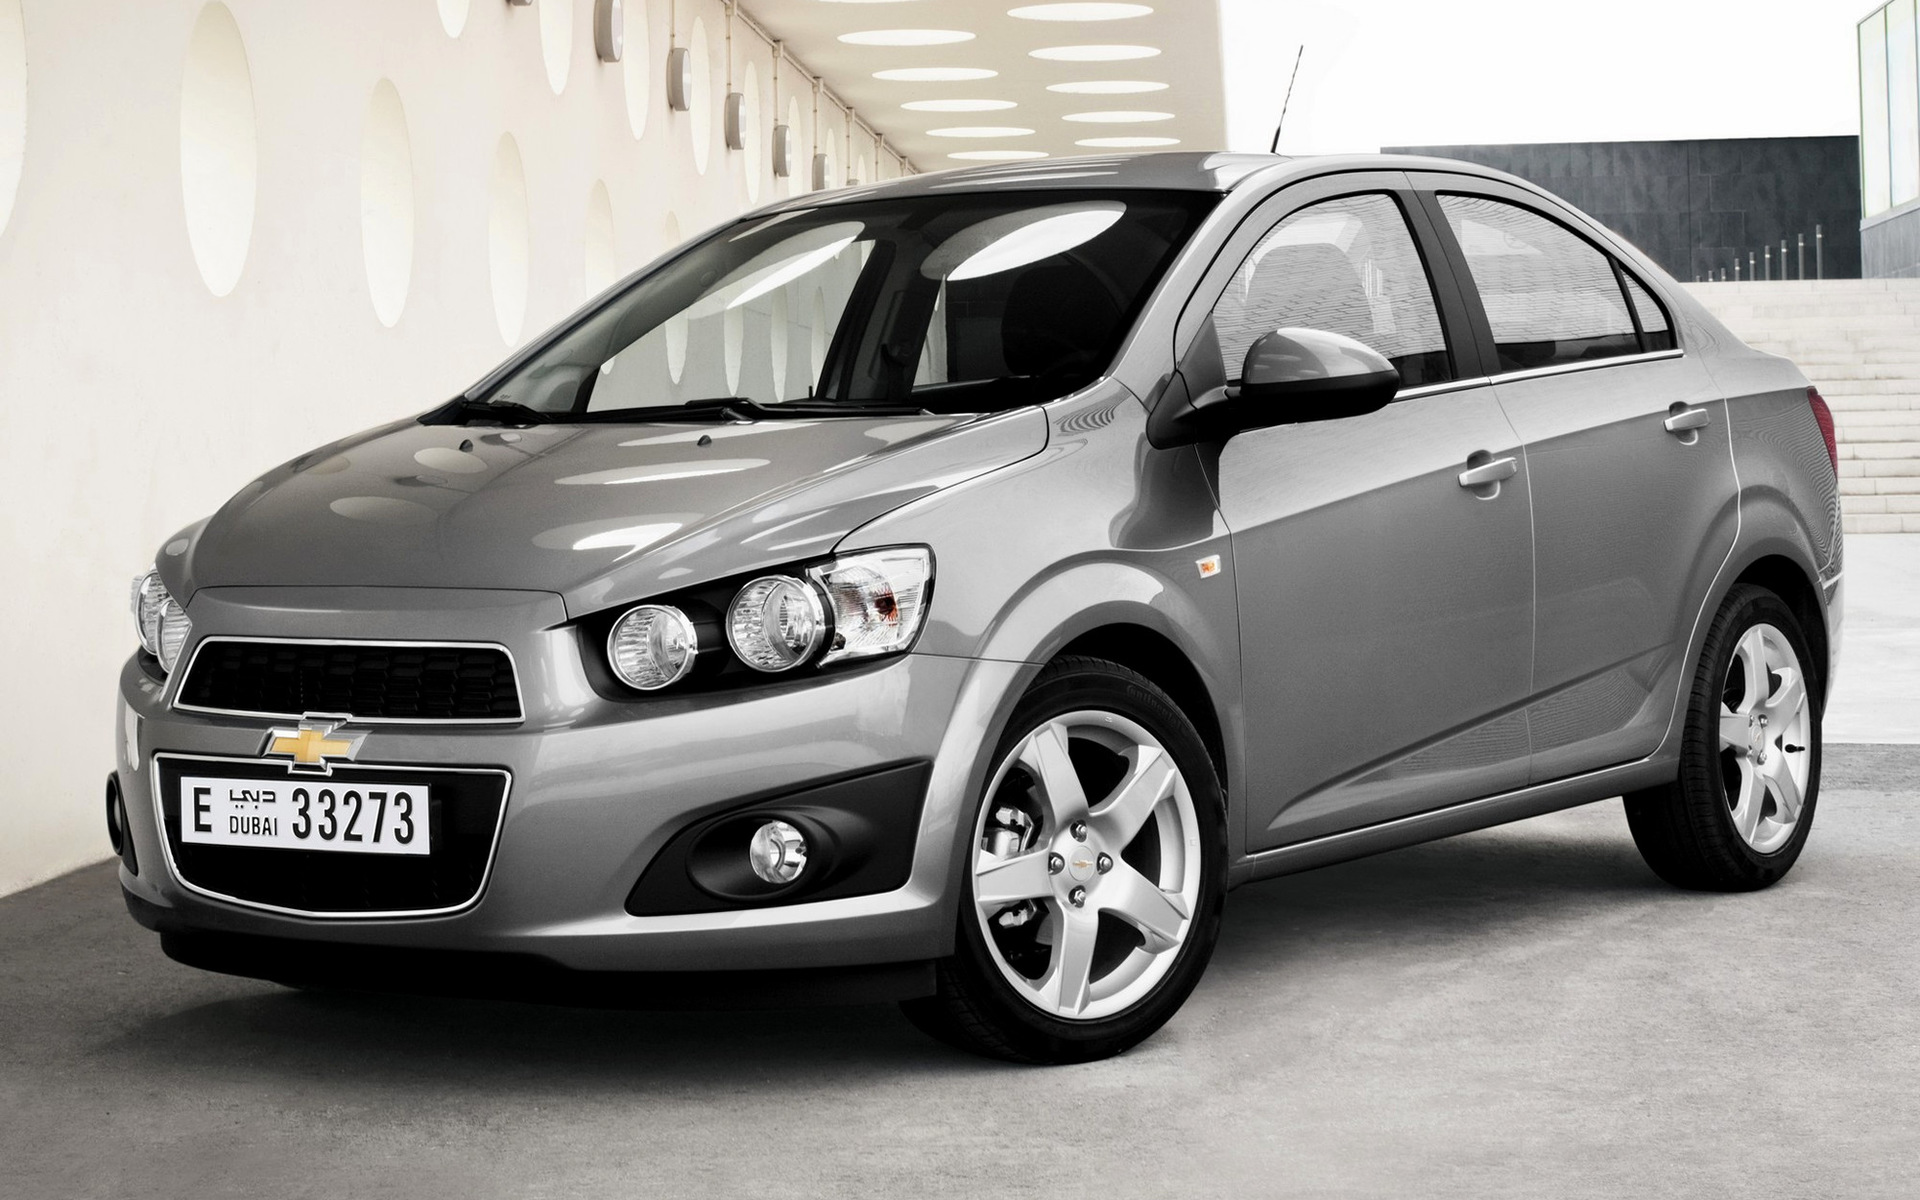 2011 Chevrolet Sonic Sedan - Wallpapers and HD Images ...